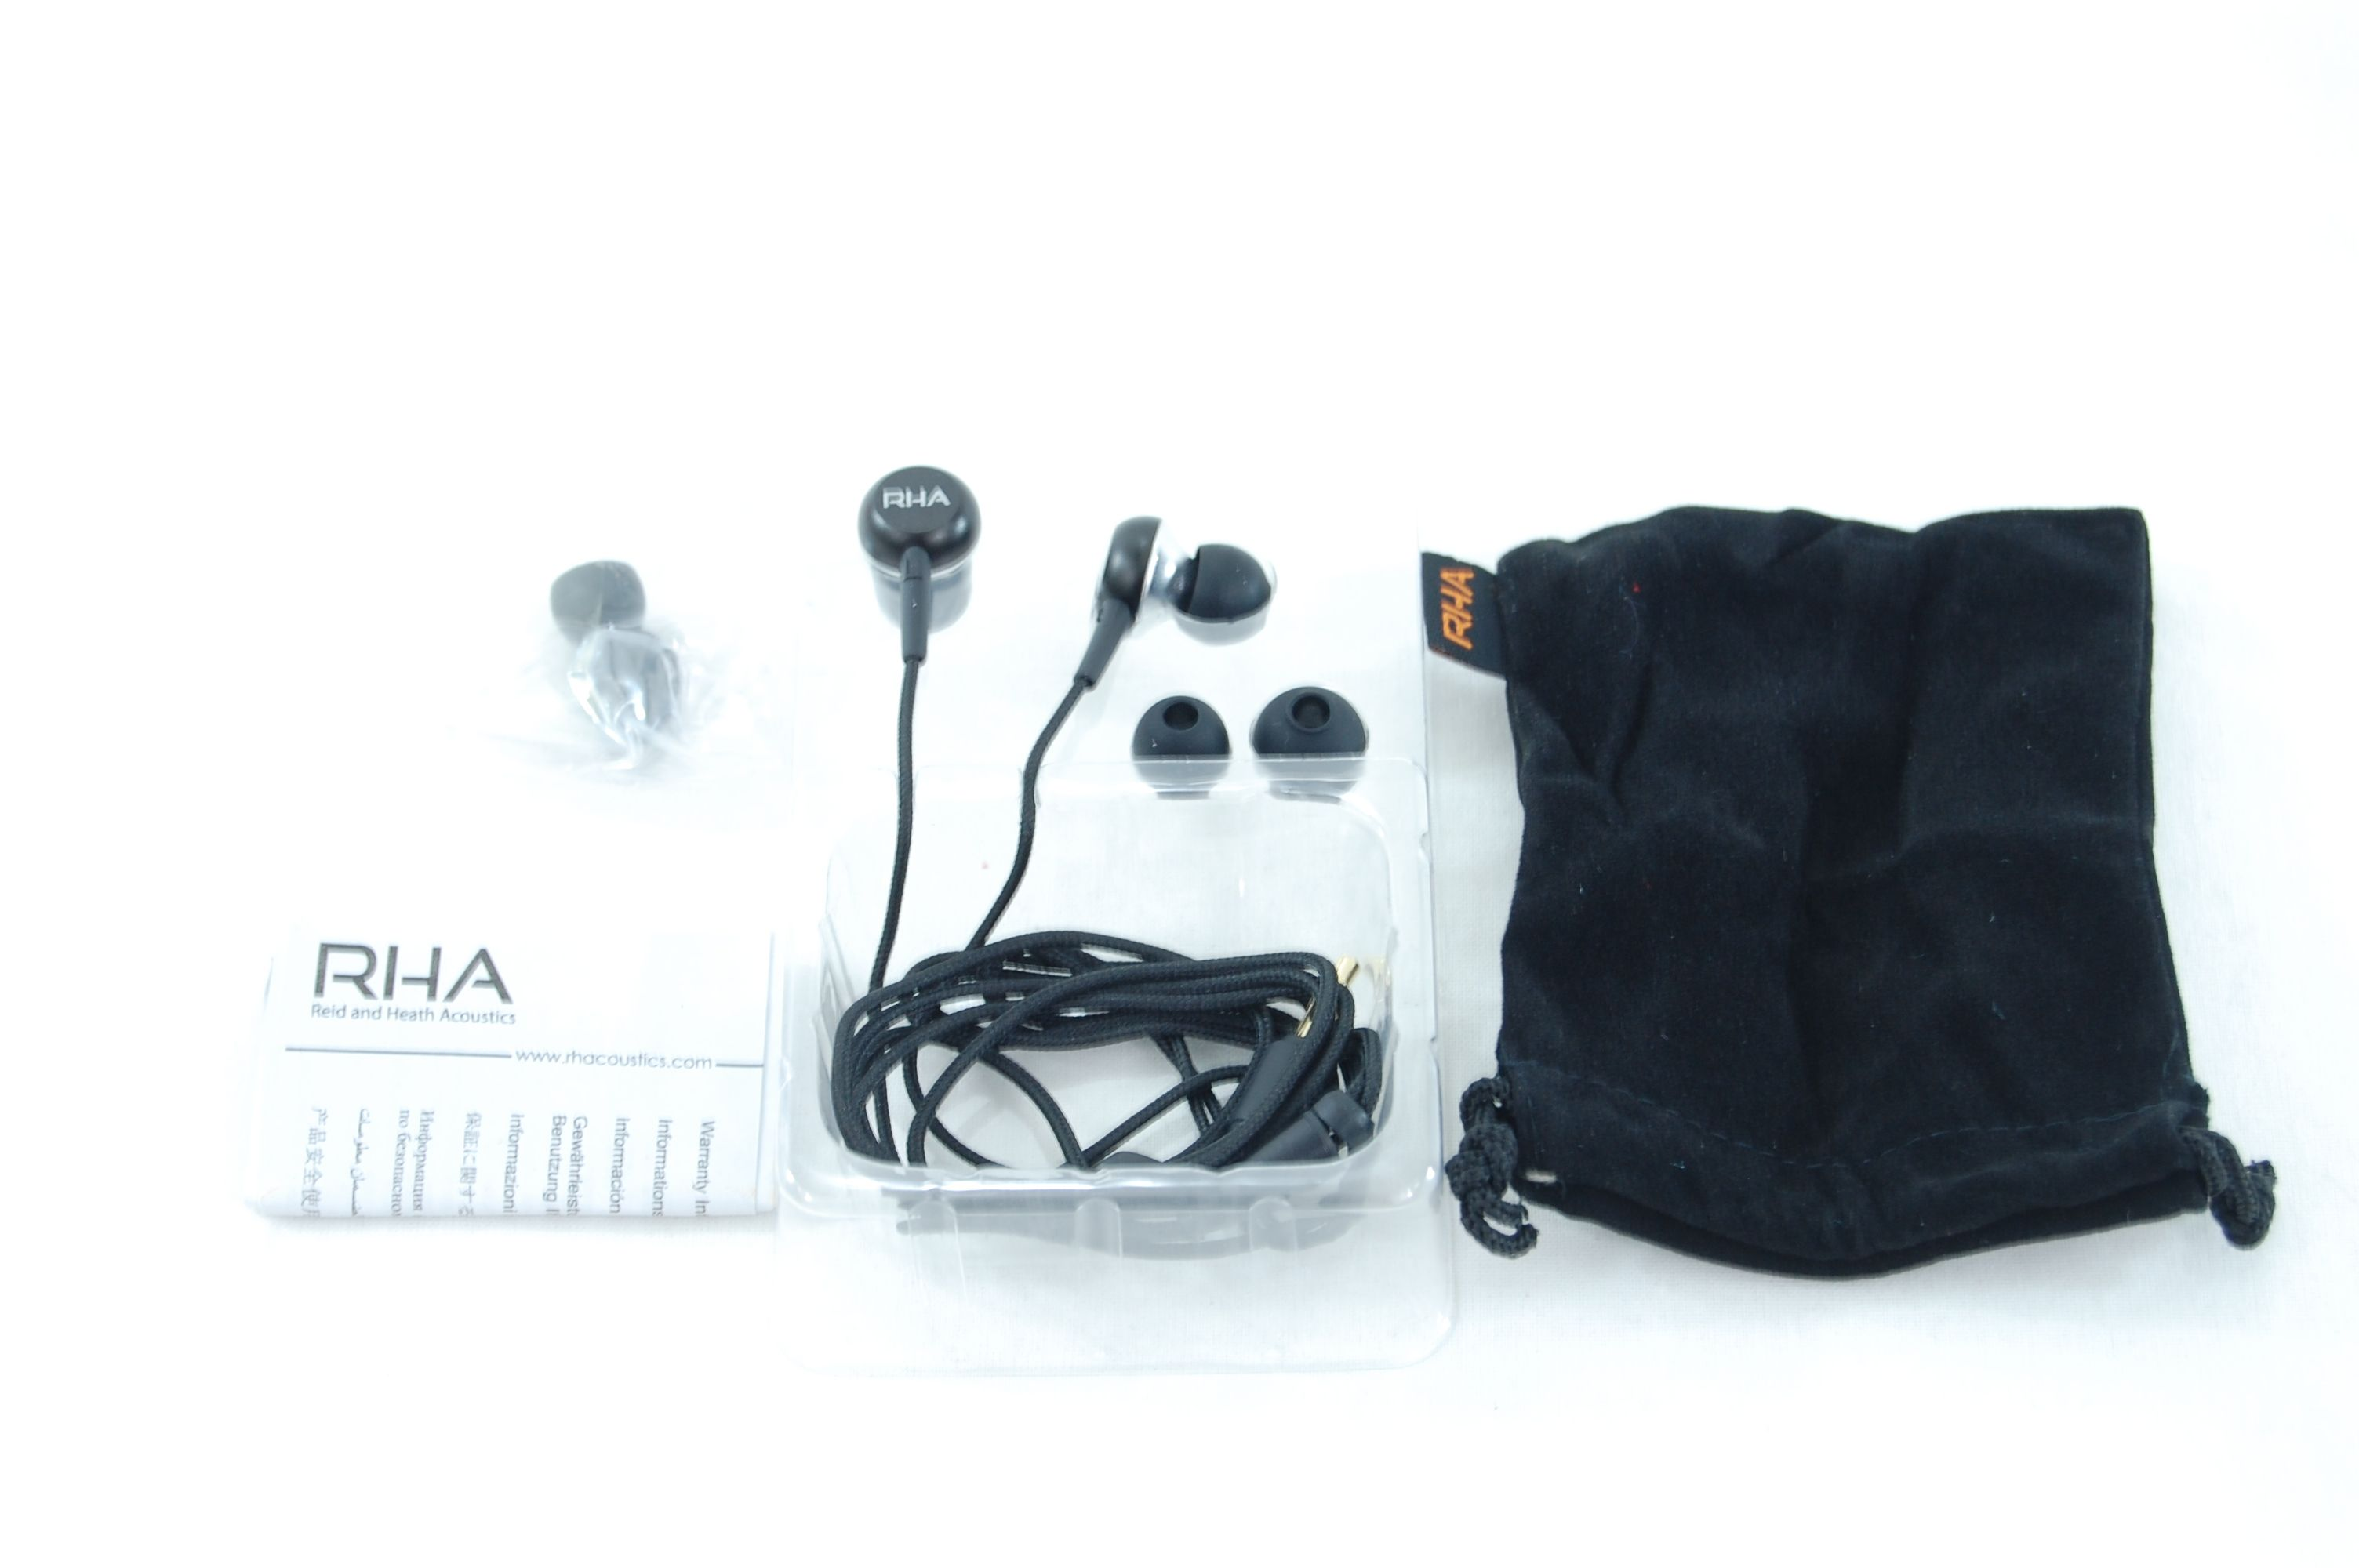 RHA MA 350 Noise Isolating Aluminum Earphones Review - Box Contents - Unboxed